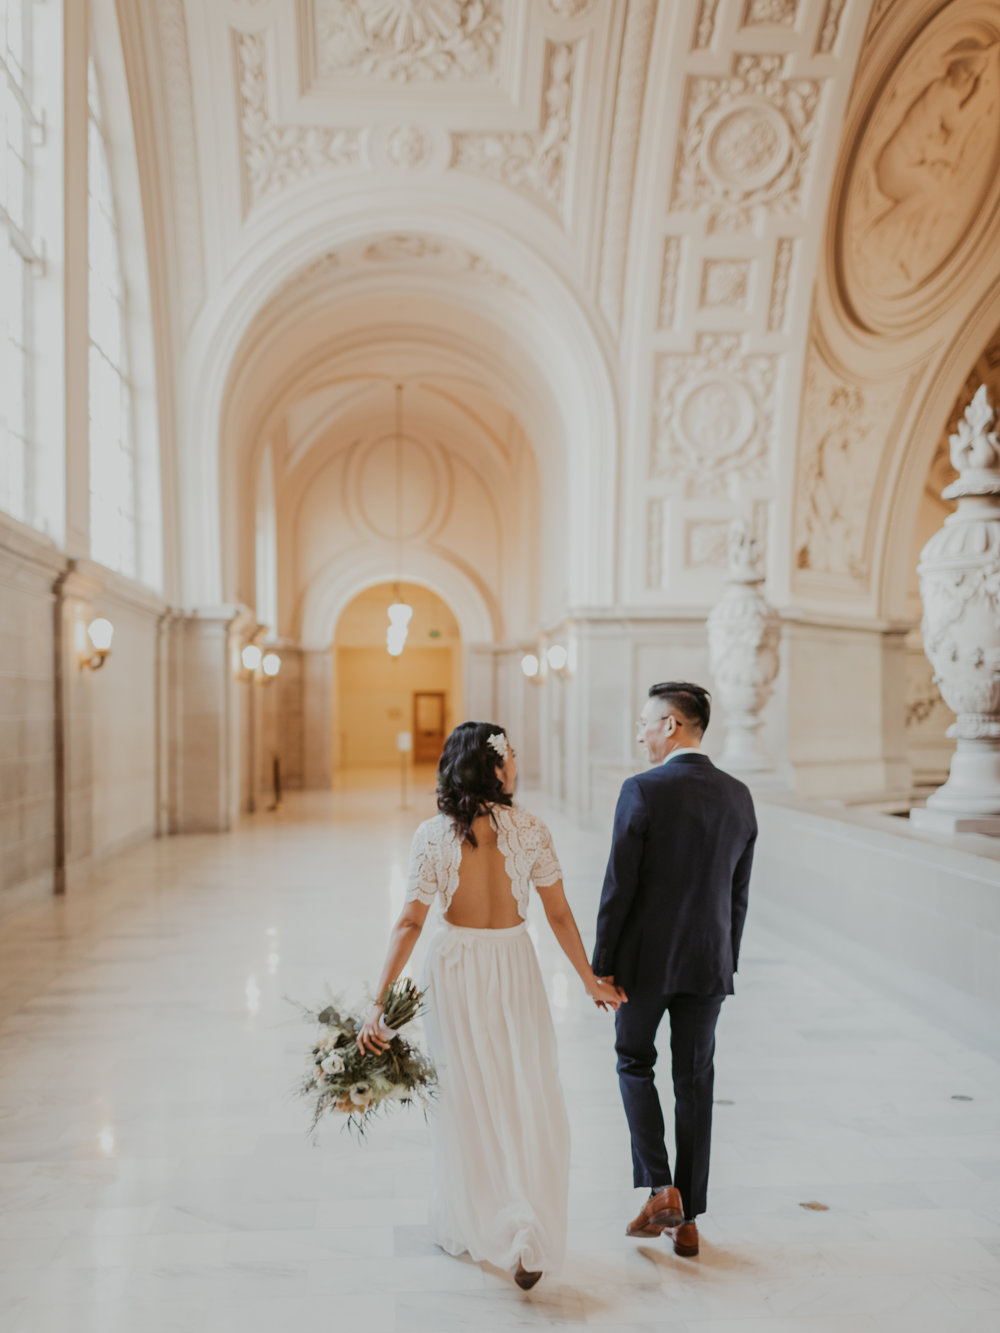 First Wedding of 2019! - Happy 2019! Here are some photos from my first wedding in the New Year!The location is at one of my favorite spot, San Francisco City Hall! If you get married there, please hire me!-xot.